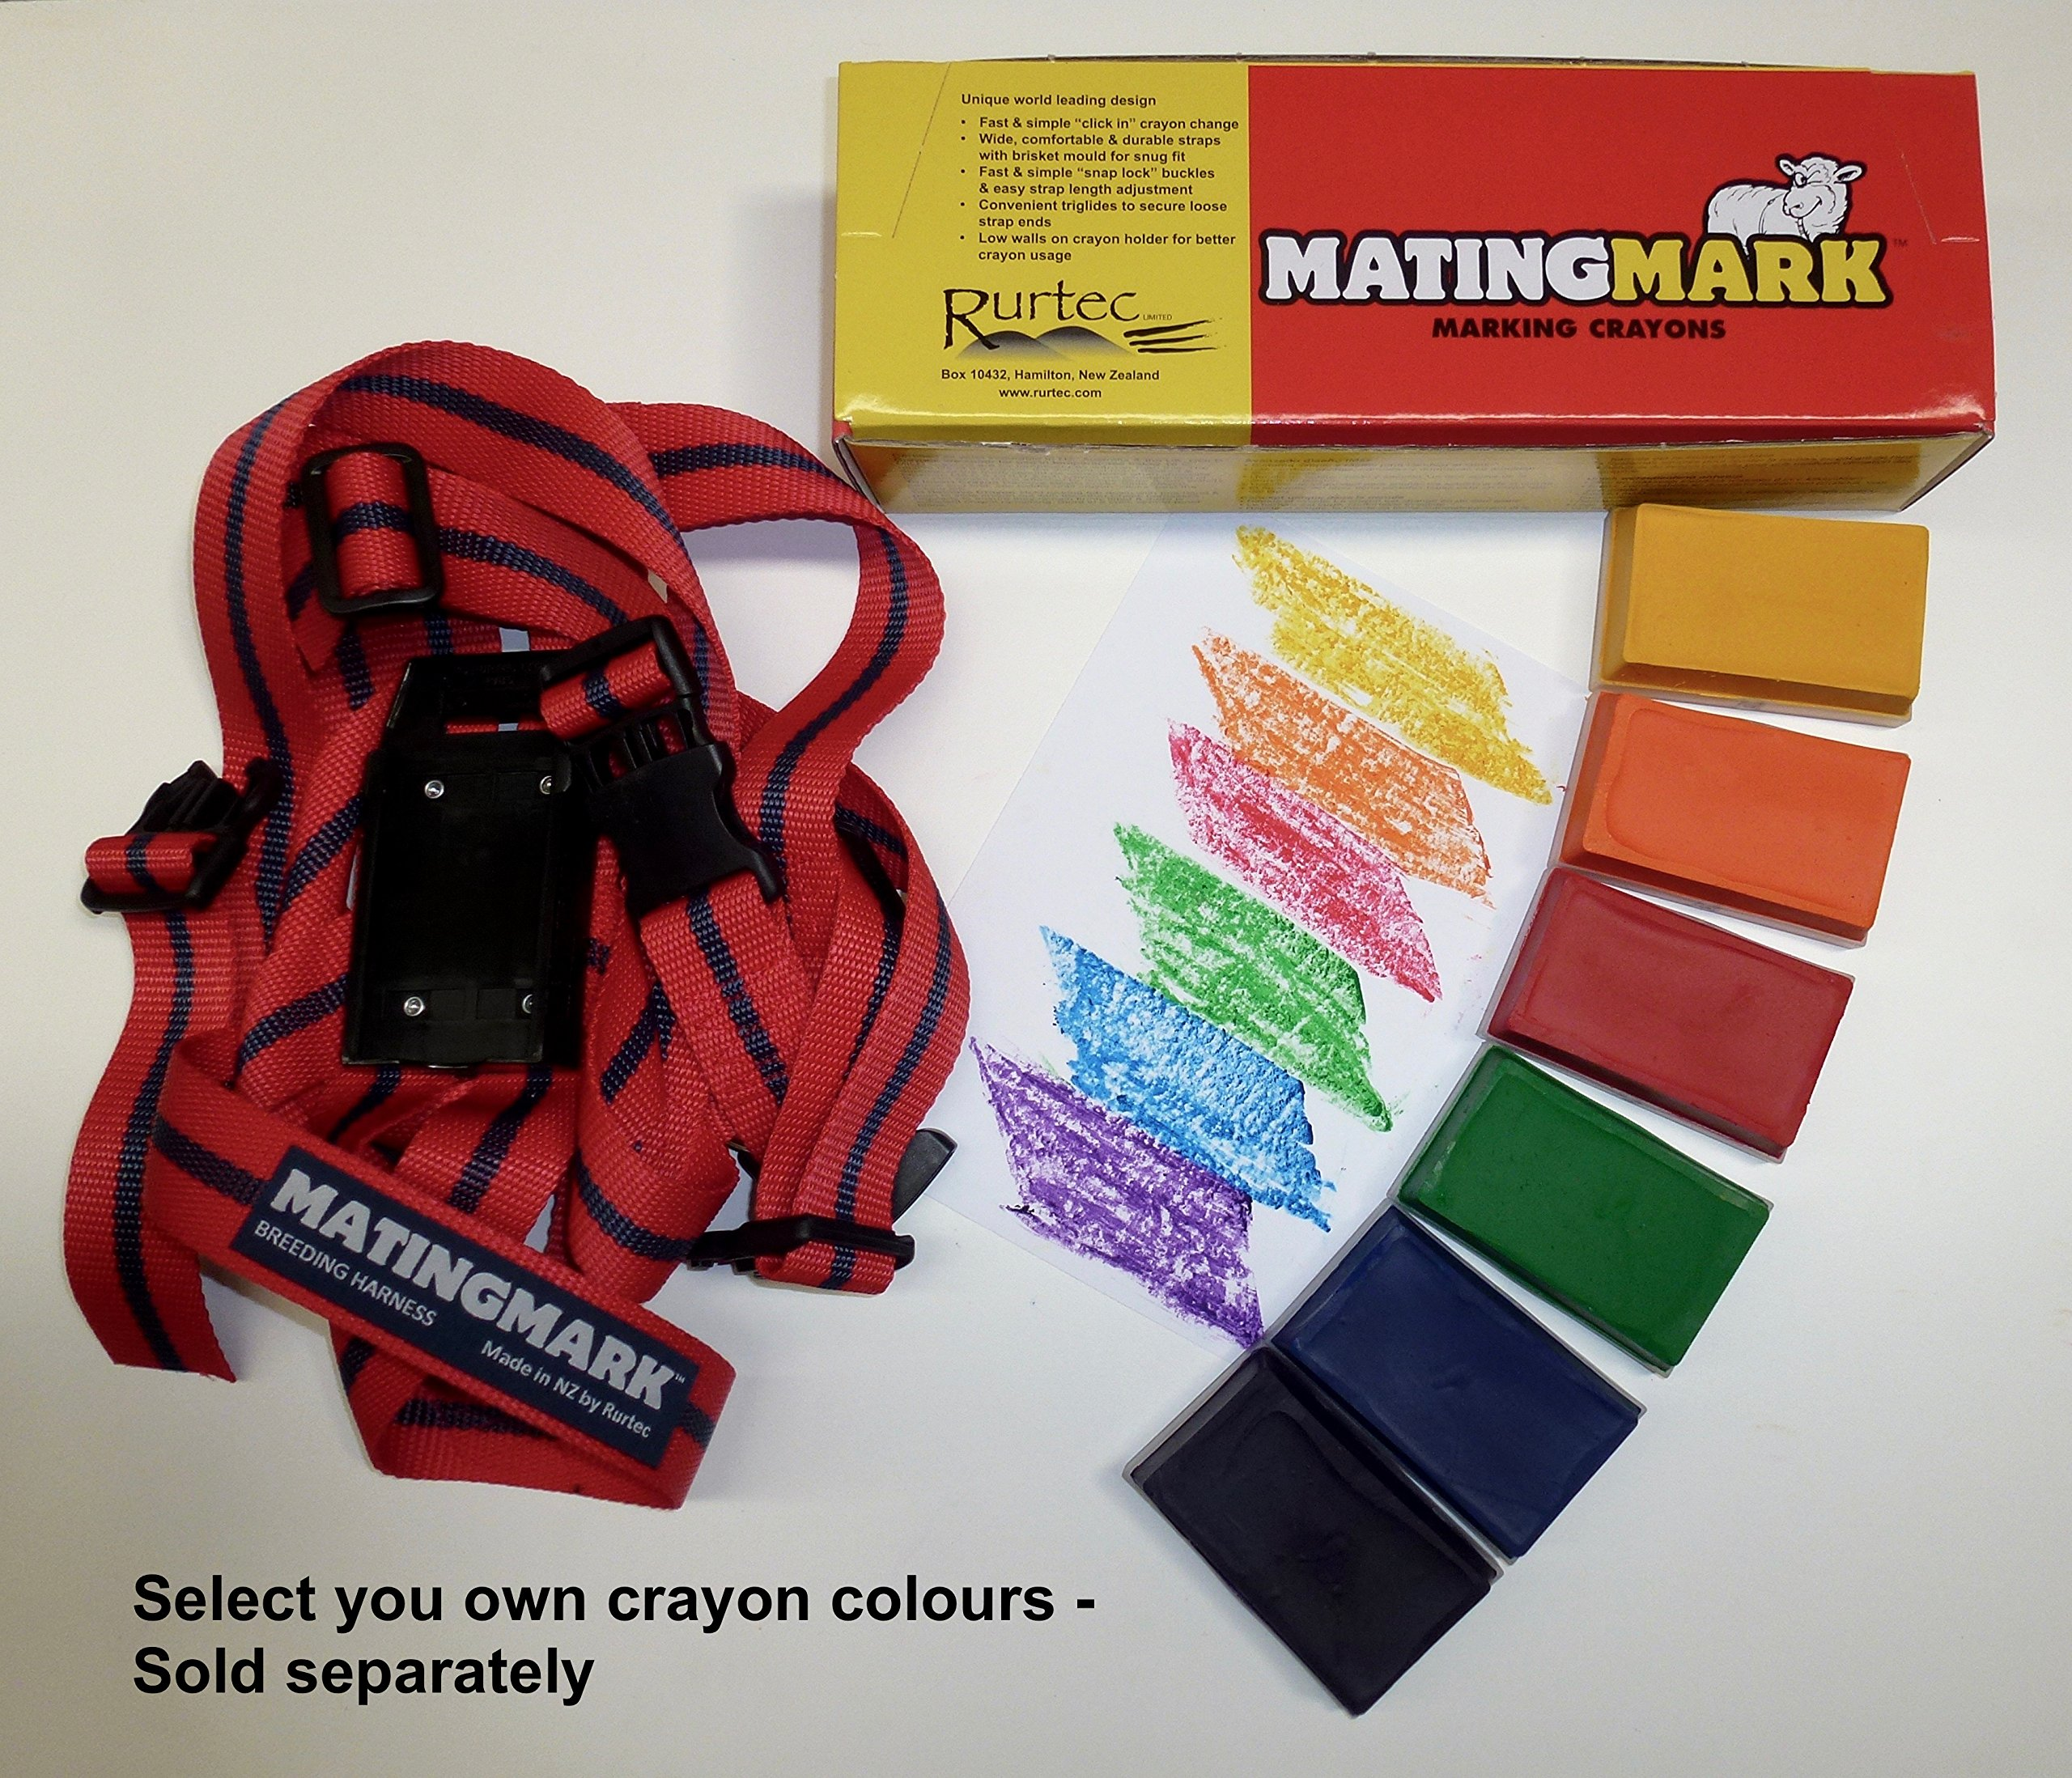 MATINGMARK Deluxe Ram Marking Harness for Monitoring Breeding Sheep & Goats by Rurtec, Crayon Block Marker System, Made in New Zealand - Standard Size (Crayon Sold Separately) by MATINGMARK (Image #1)